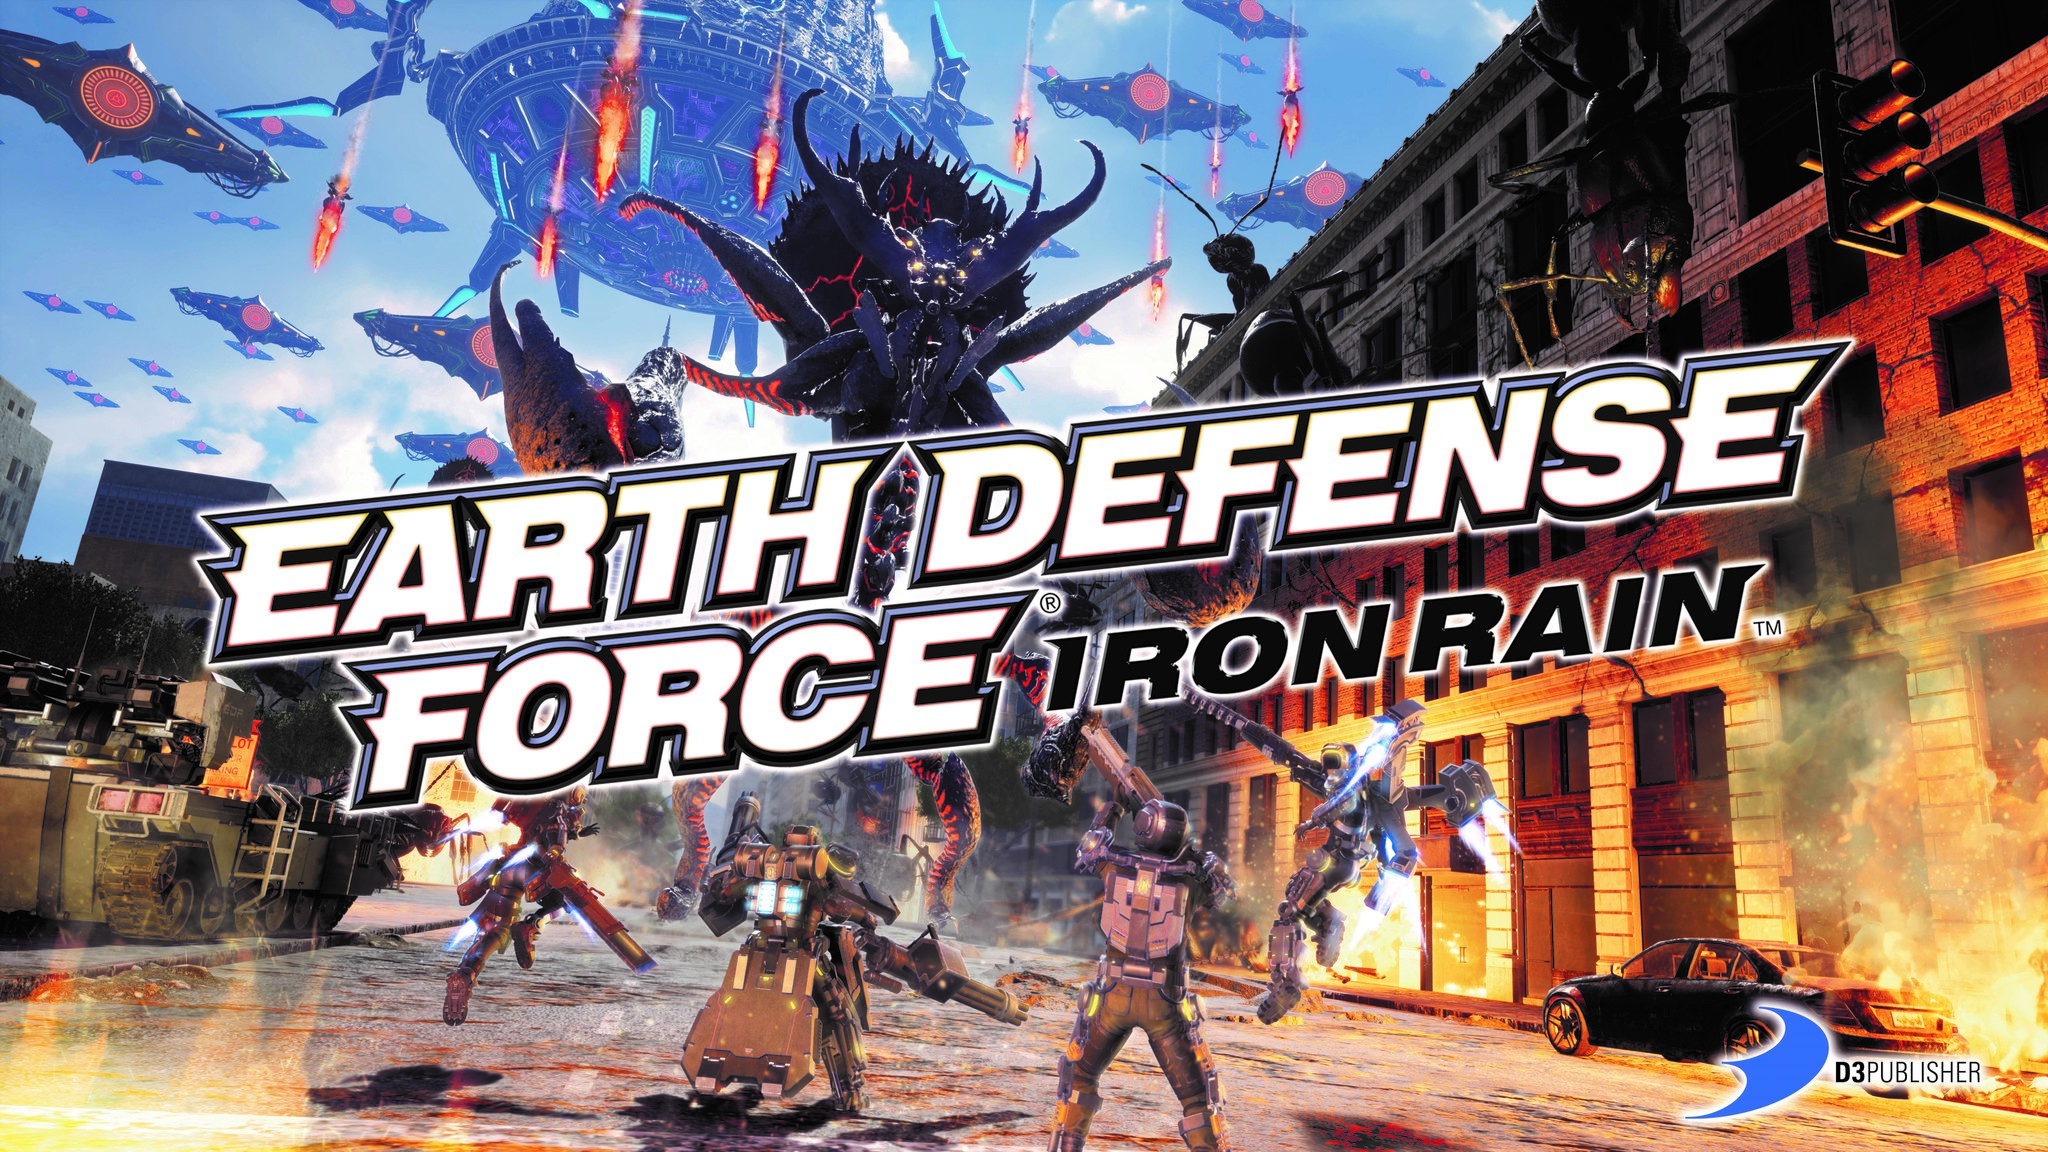 Earth Defense Force Iron Rain Review